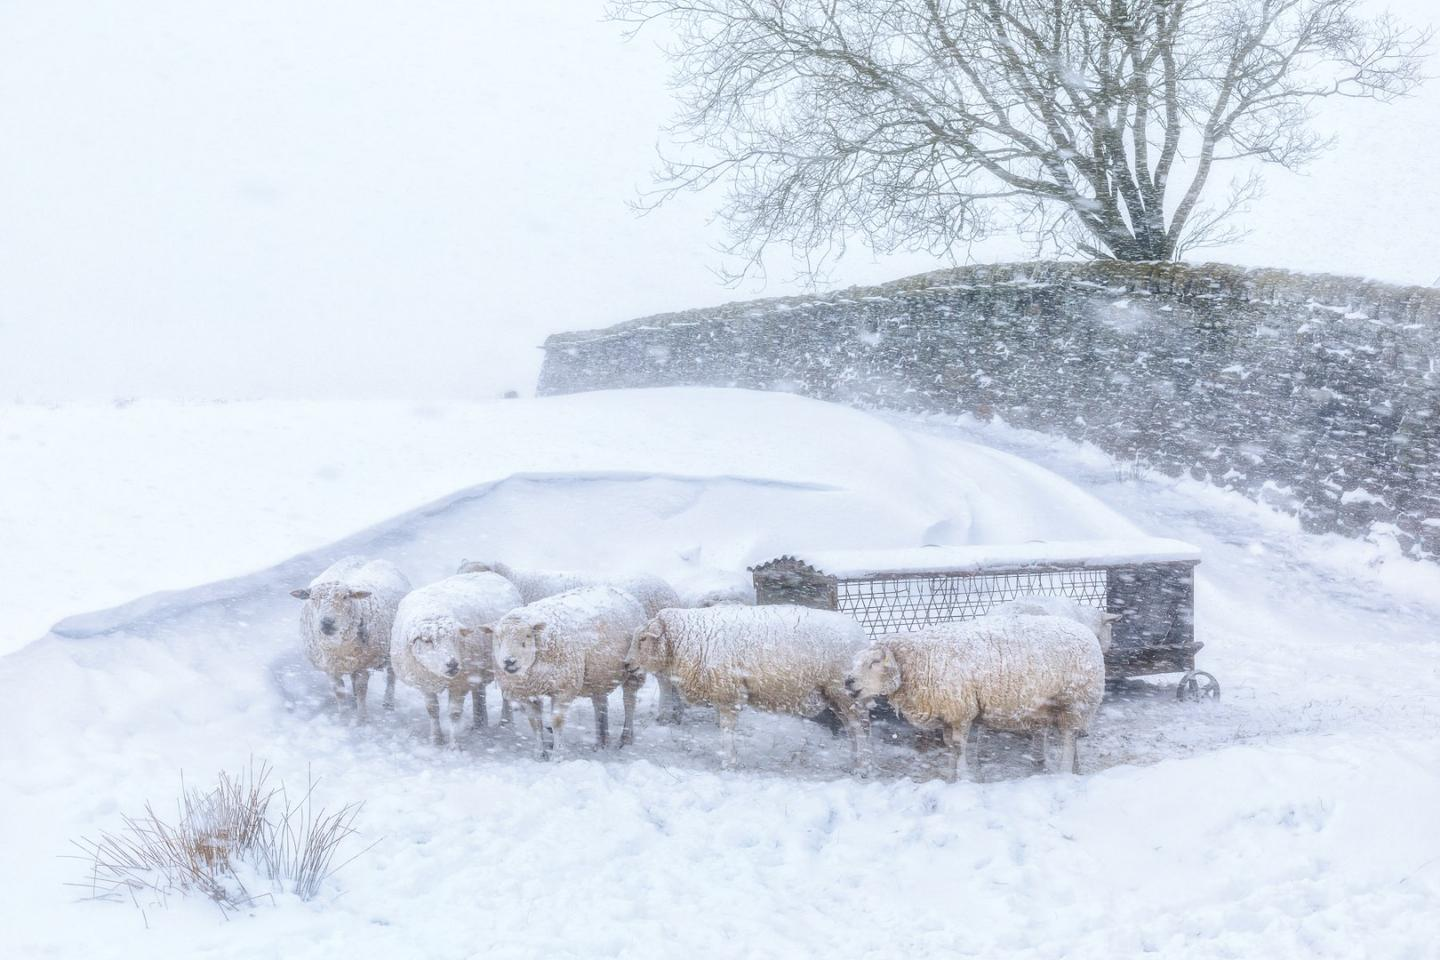 Overall Winner and Light on the Land – Winner,Robert Birkby (UK). Near Hebden Bridge, West Yorkshire, England. Much of the higher ground in the South Pennines is relatively featureless, but these sheep had found shelter between a snowdrift and dry stone wall.